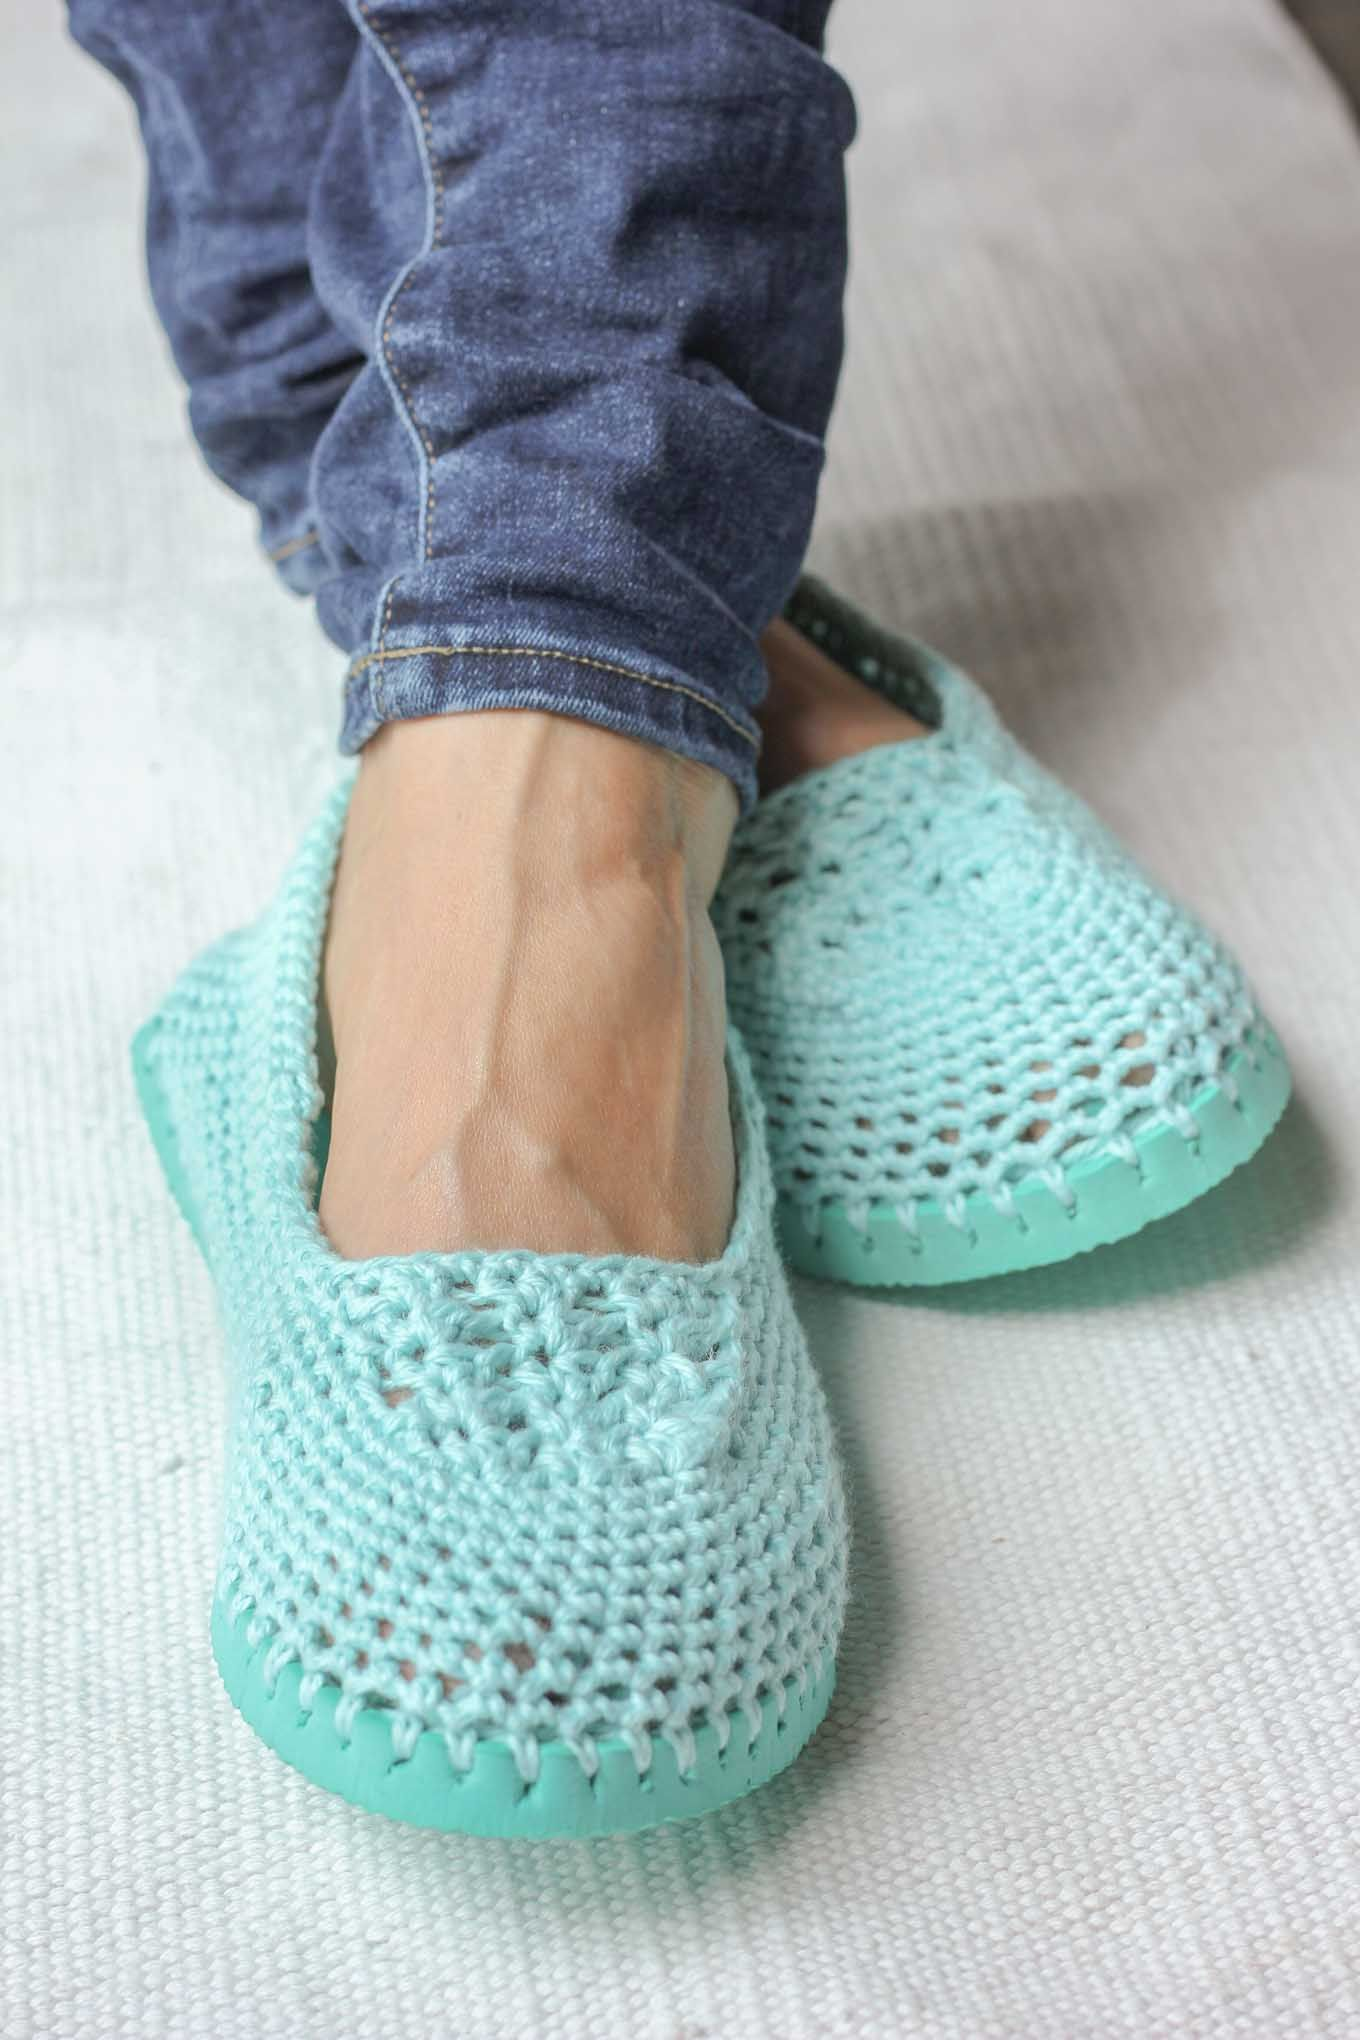 Make cheap flip flops into crochet slippers free pattern cotton yarn and a flip flop sole make this free crochet slippers pattern perfect for warmer bankloansurffo Choice Image